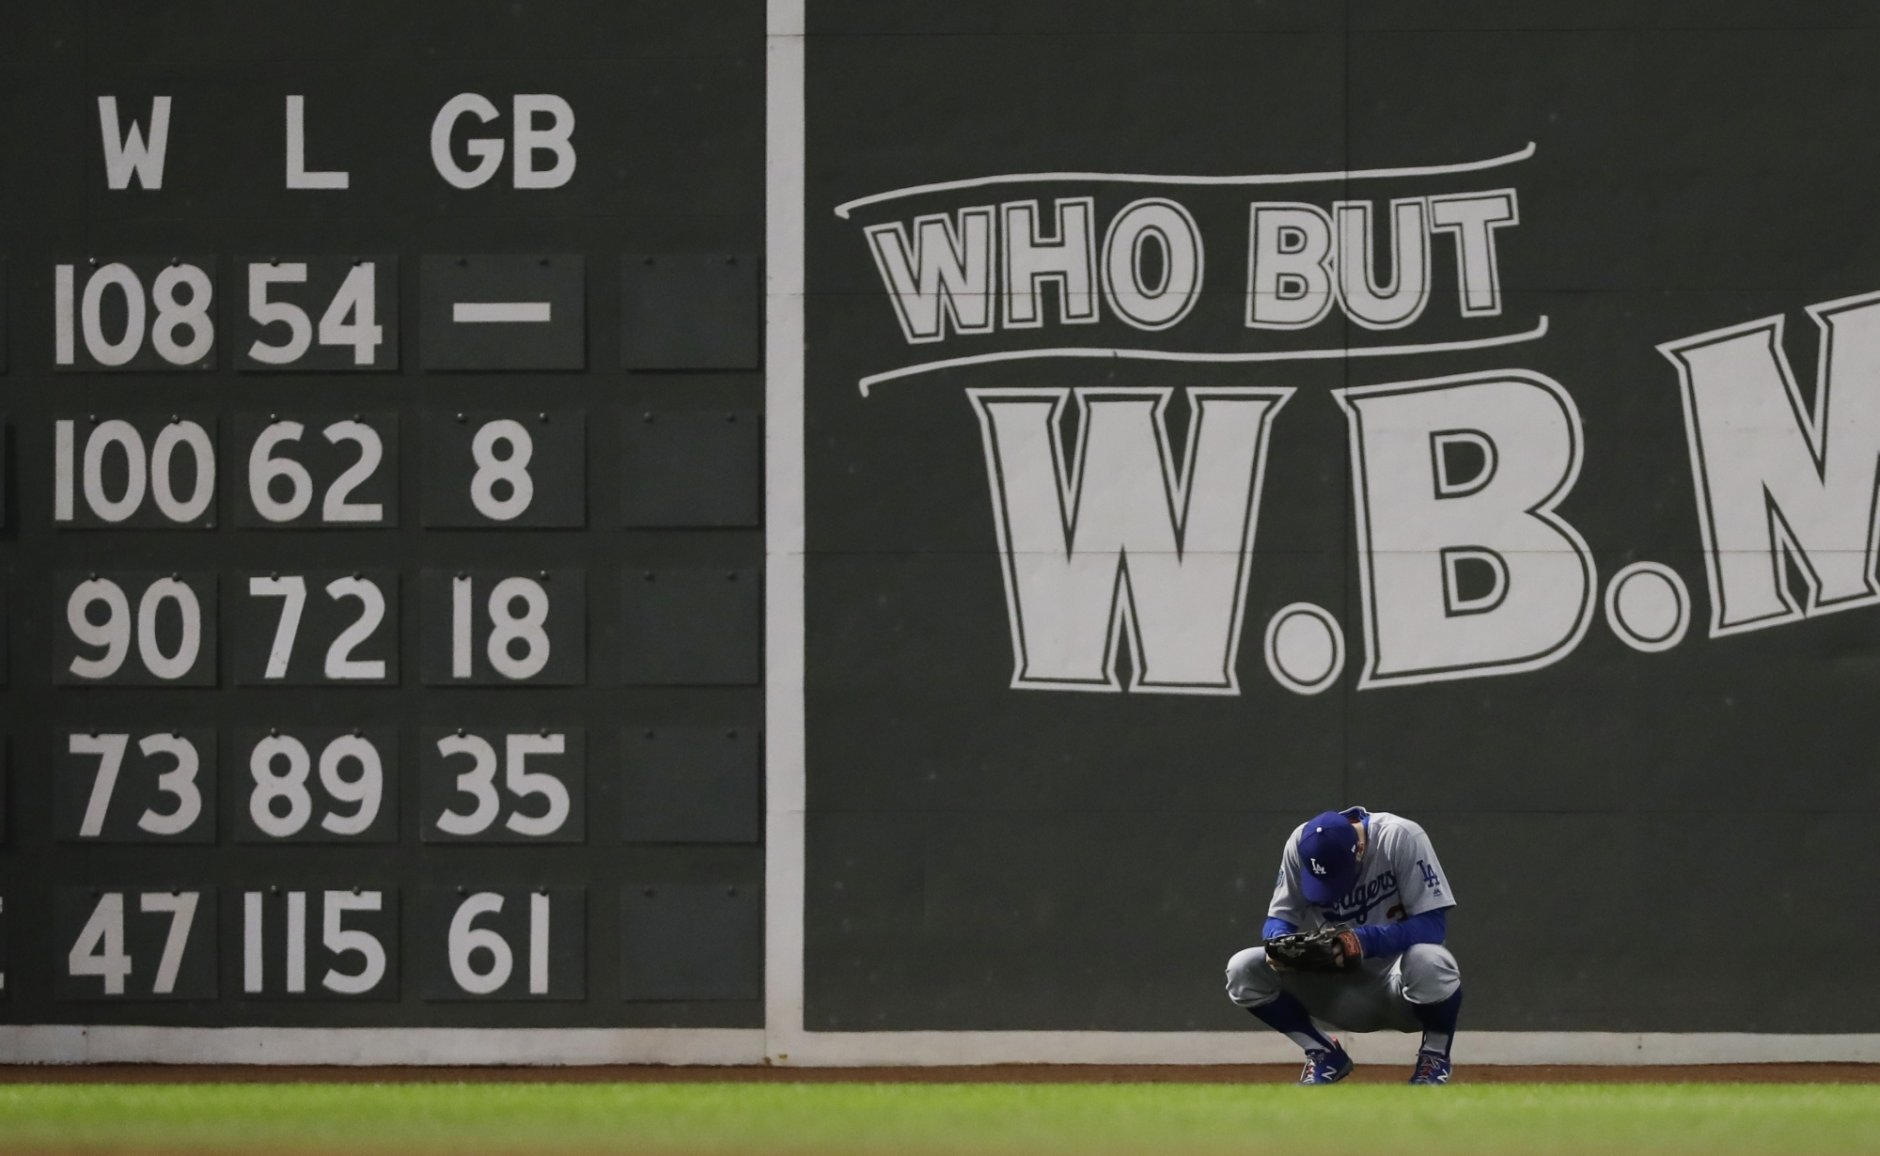 Los Angeles Dodgers outfielder Chris Taylor waits for a pitcher change during the eighth inning of Game 2 of the World Series baseball game against the Boston Red Sox Wednesday, Oct. 24, 2018, in Boston. (AP Photo/David J. Phillip)